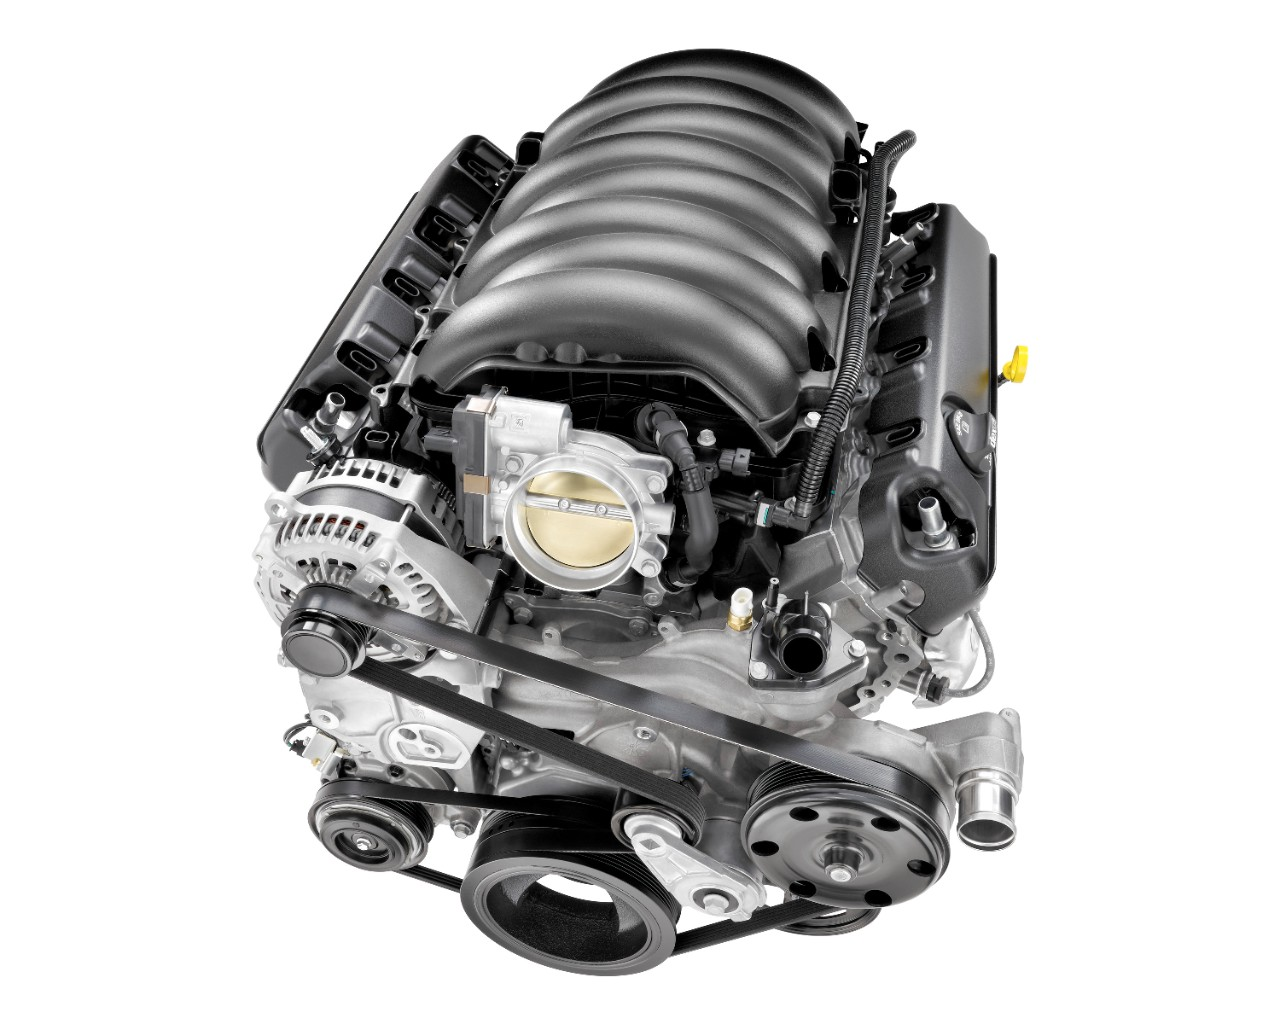 hight resolution of gm 6 2l v8 ecotec3 l86 engine